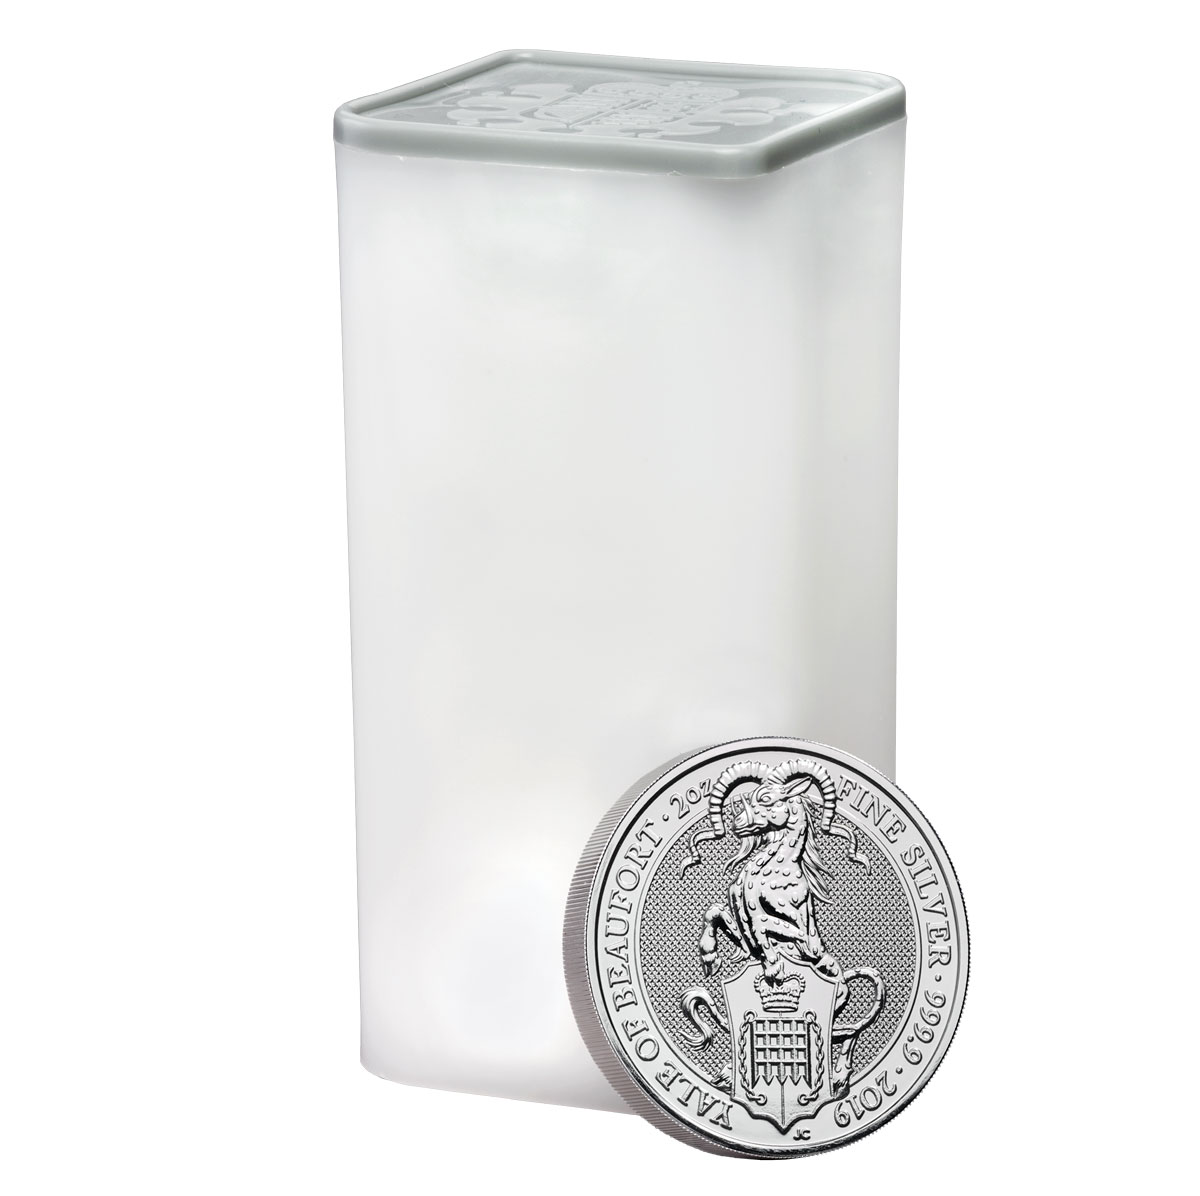 Roll of 10 - 2019 Great Britain 2 oz Silver Queen's Beasts - The Yale of Beaufort £5 Coins GEM BU